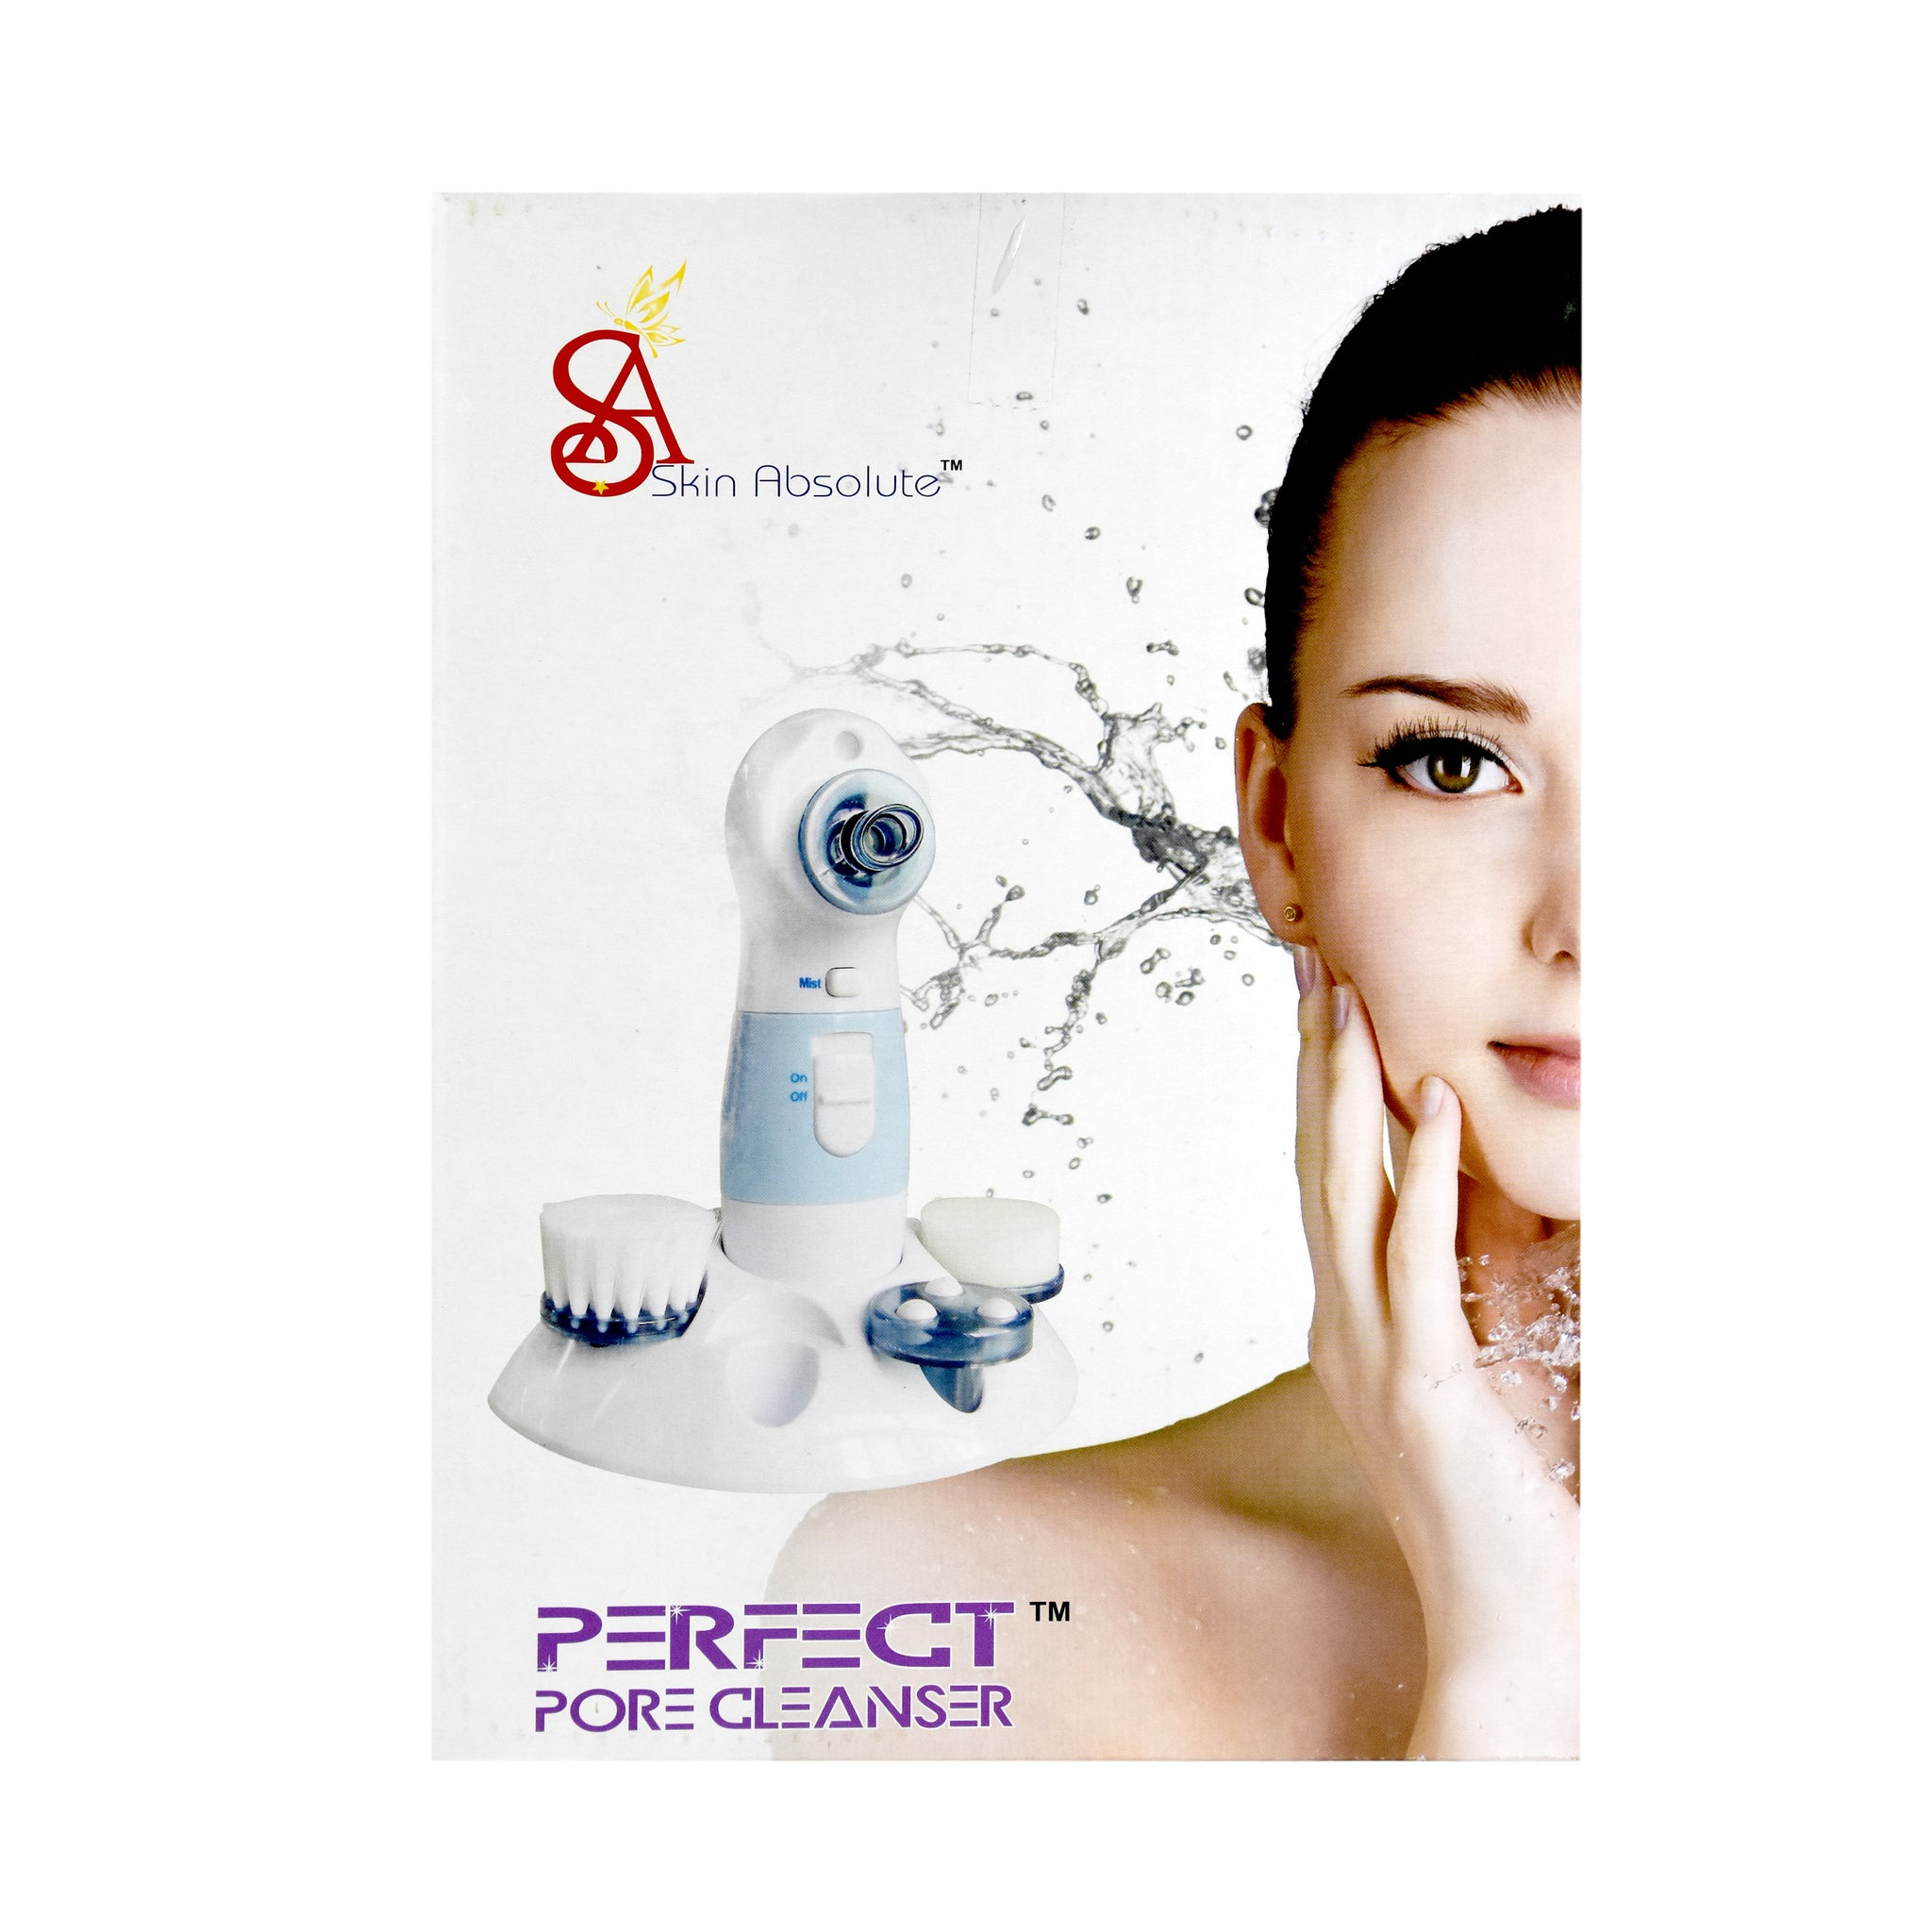 Skin Absolute Electric Vacuum Pore Cleanser & Blackhead Remover  - Perfect Pore Cleanser - Worldshopon.com